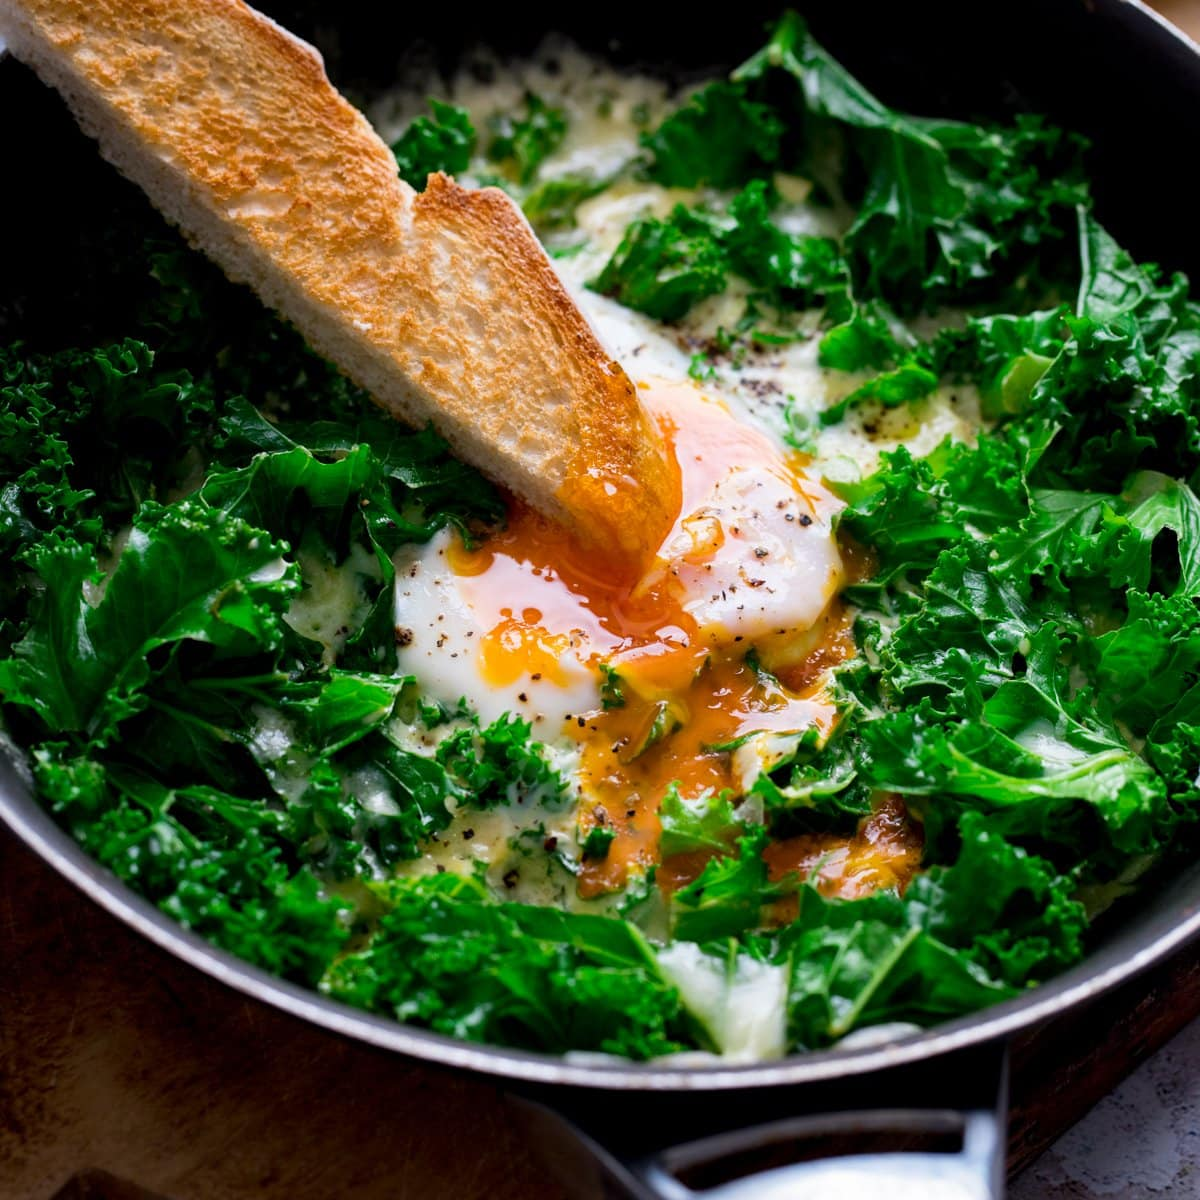 A toast soldier being dipped into a runny egg yolk in a pan of egg and cheesy kale